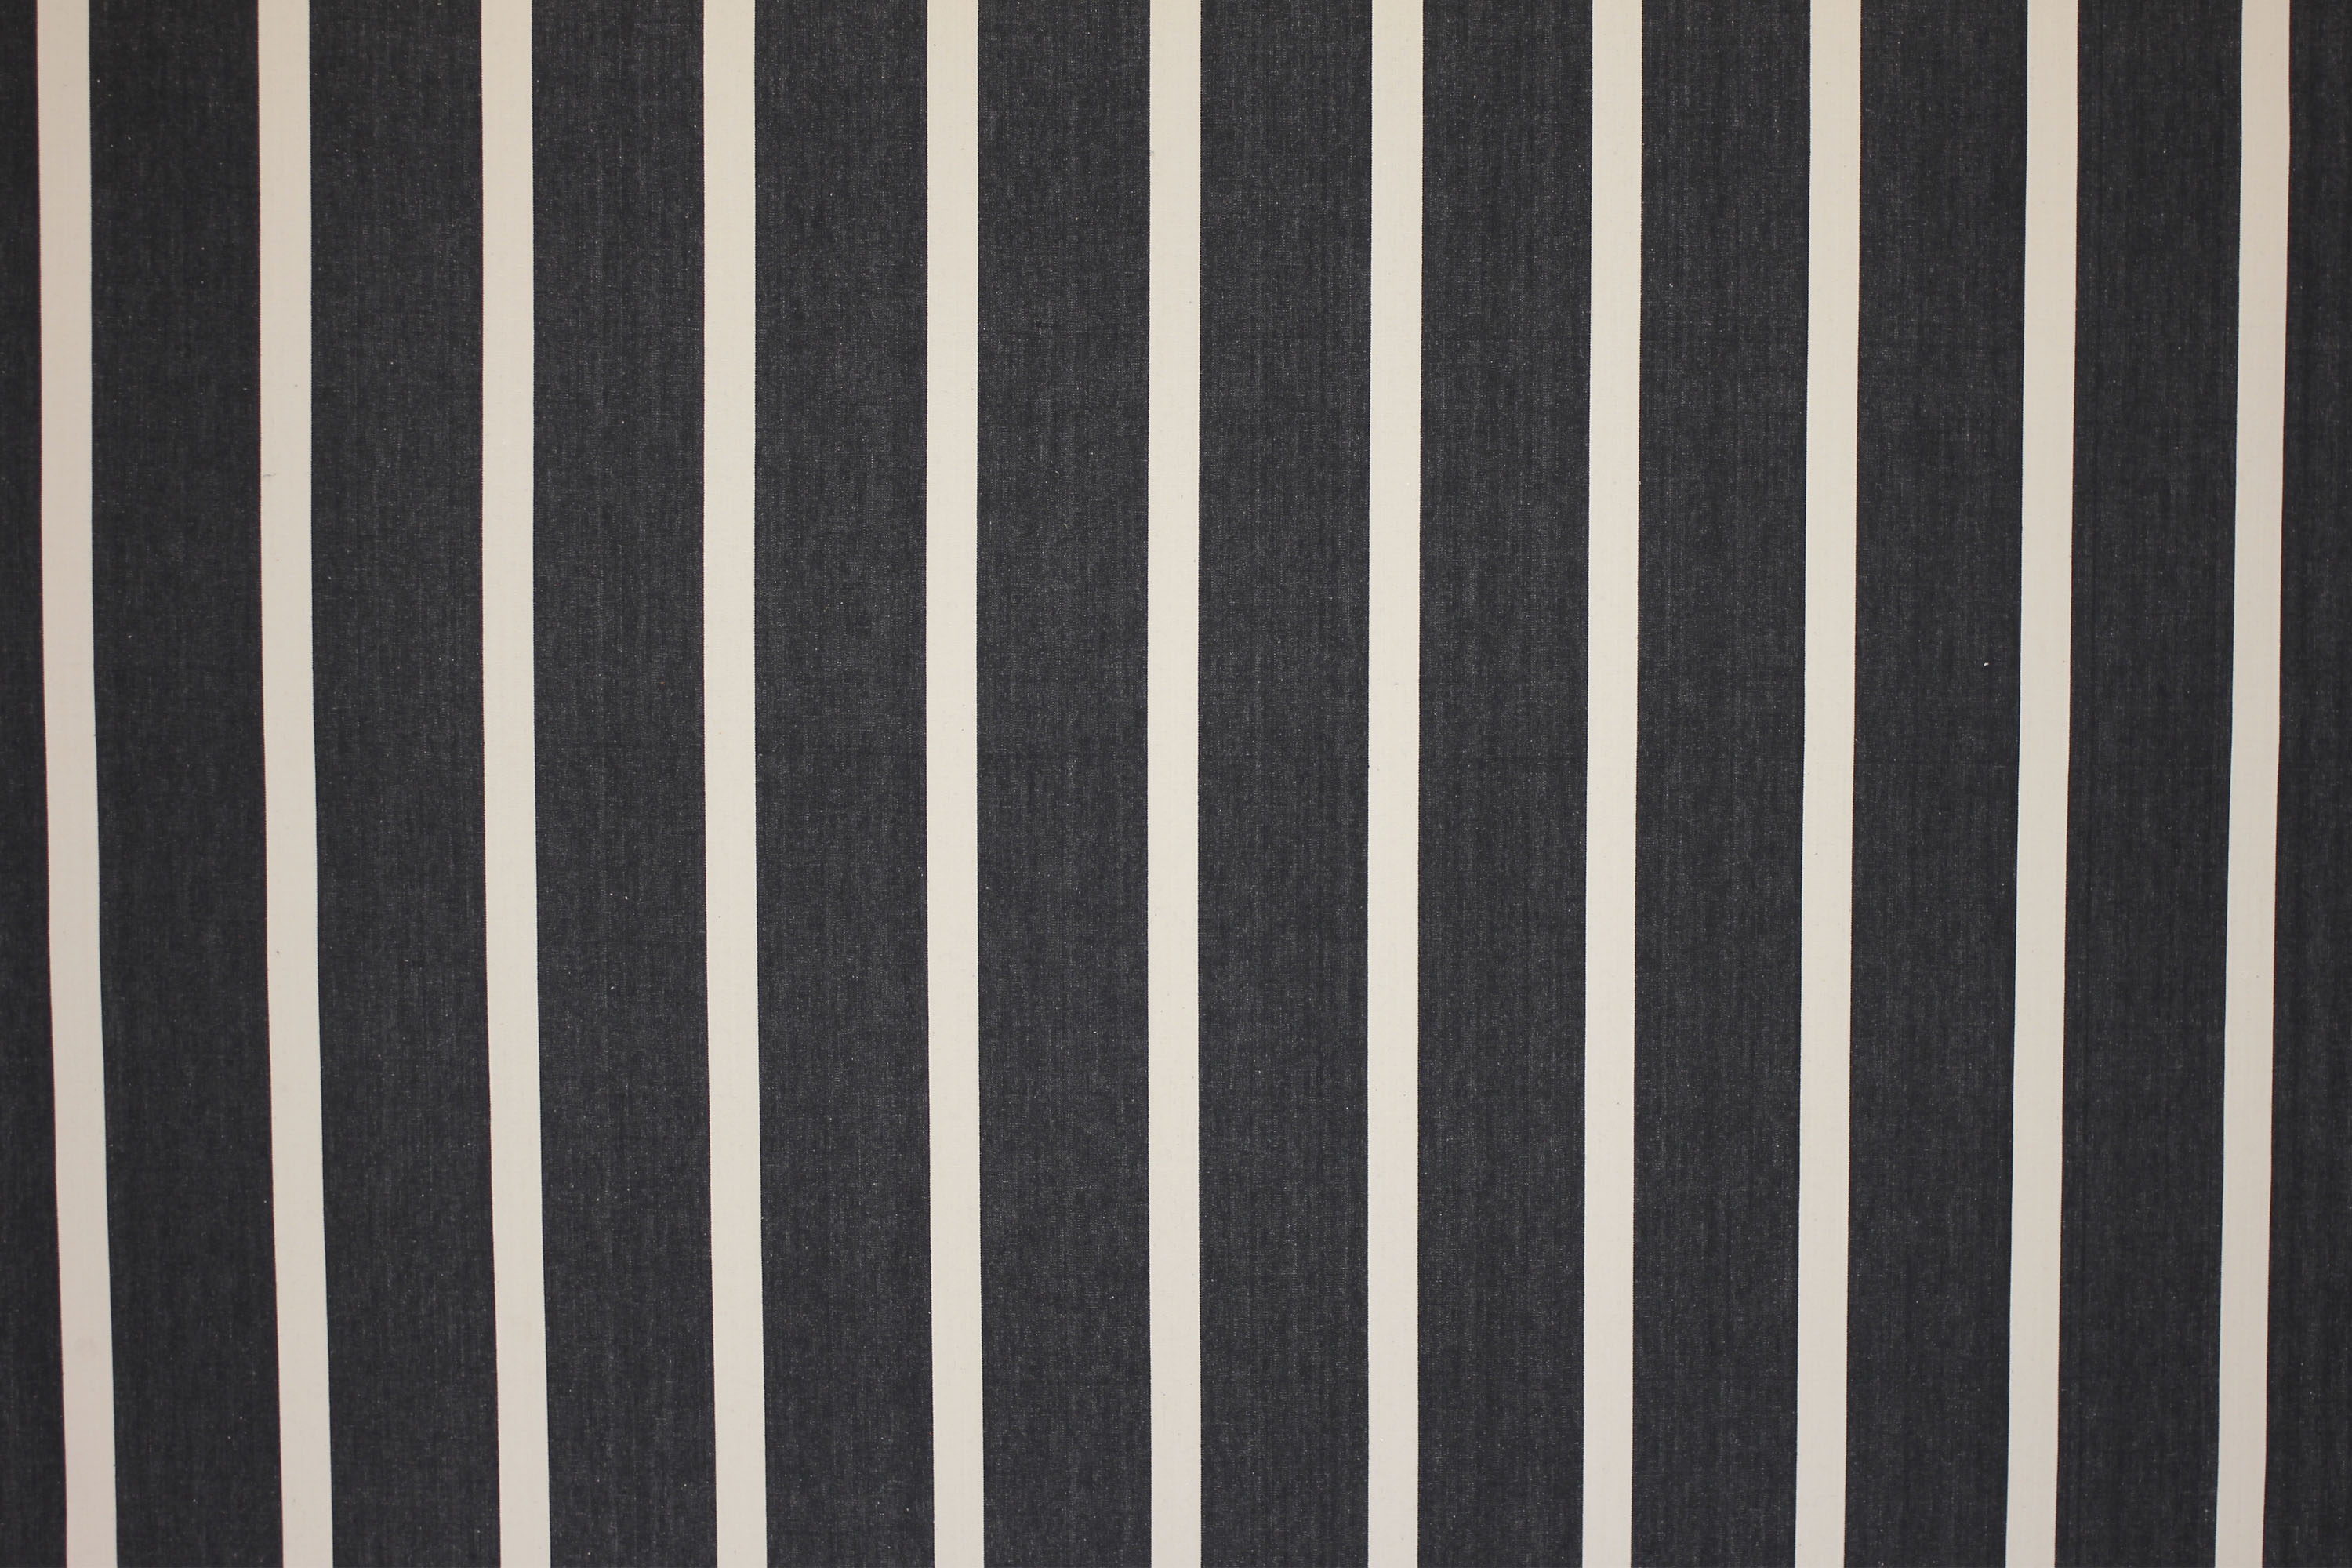 judo black striped fabric the stripes company united states. Black Bedroom Furniture Sets. Home Design Ideas